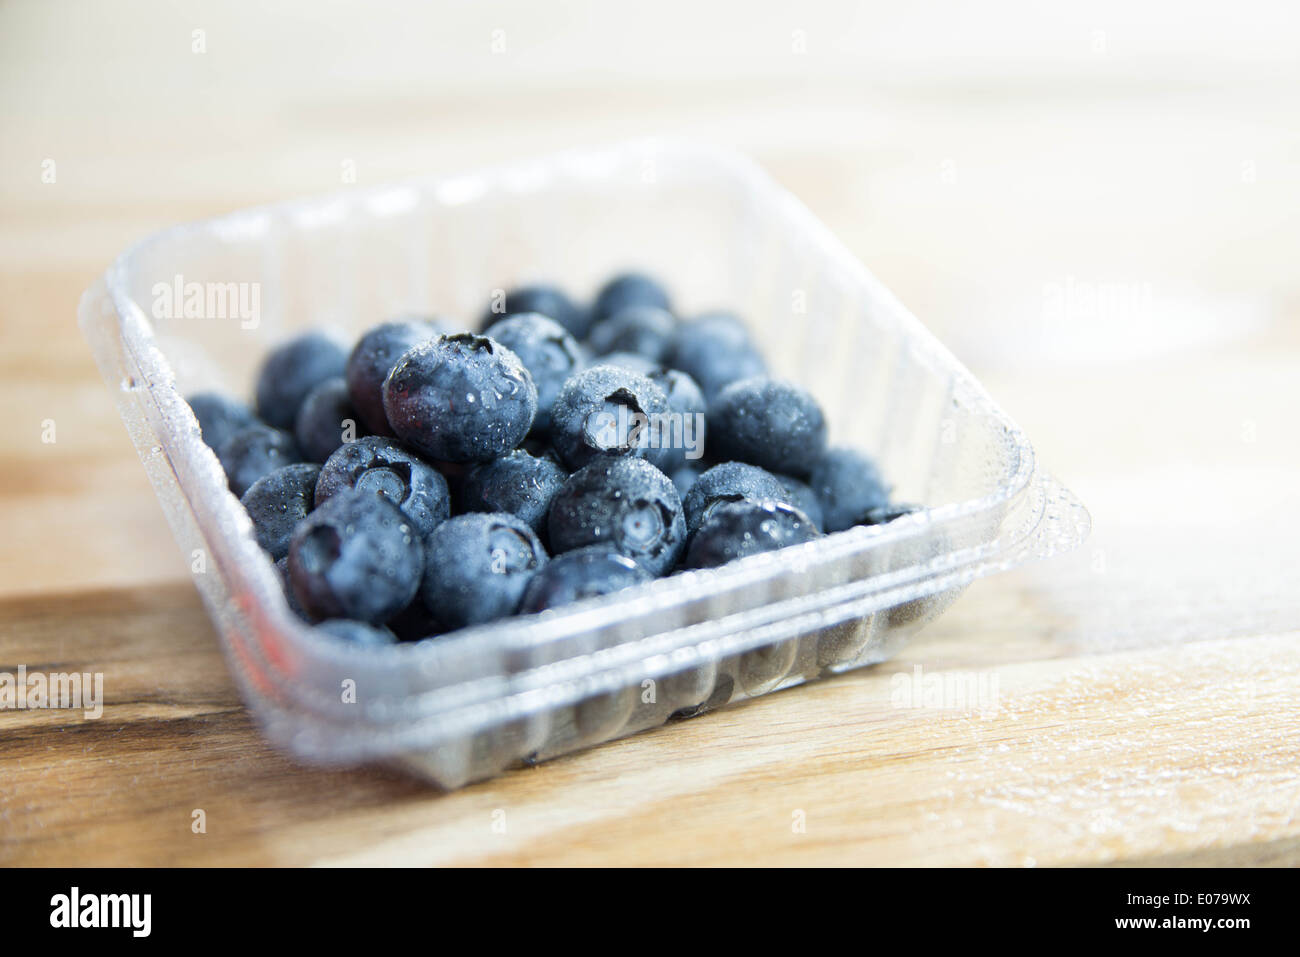 Blueberries on wooden table in plastic box. - Stock Image